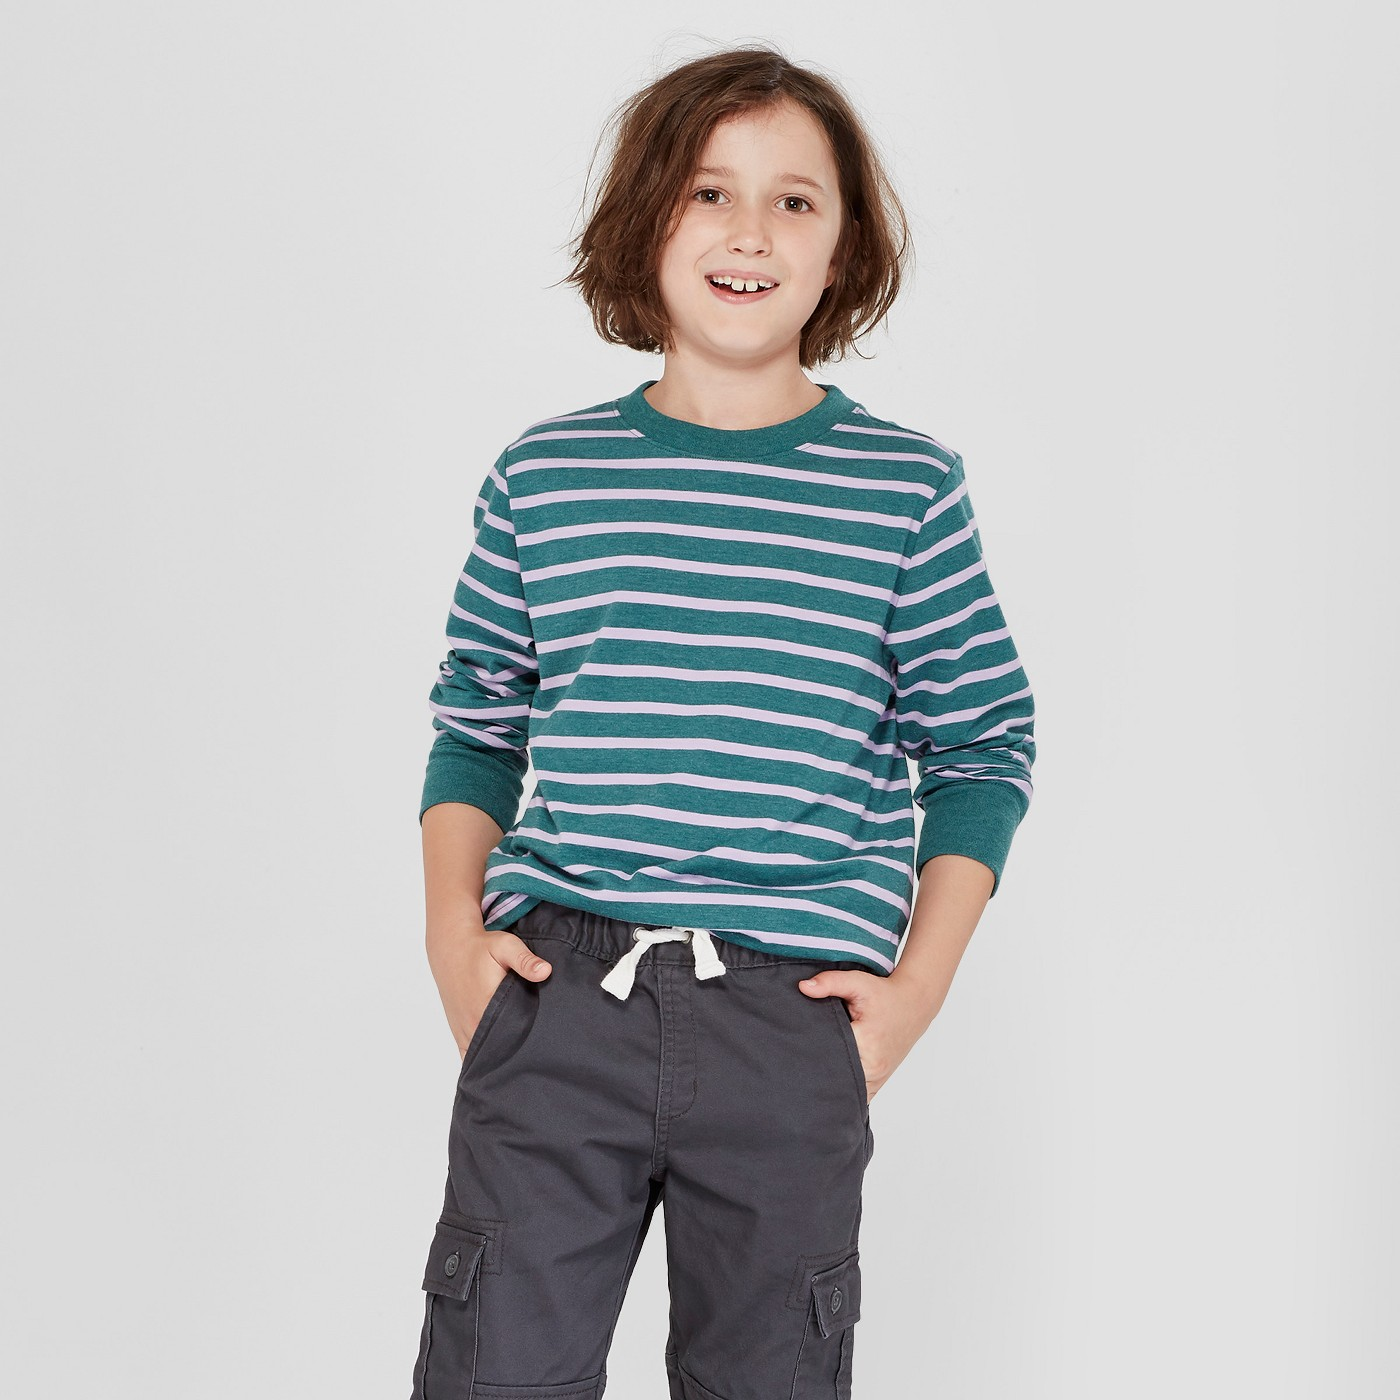 Boys' Striped Long-Sleeve Tee - $6